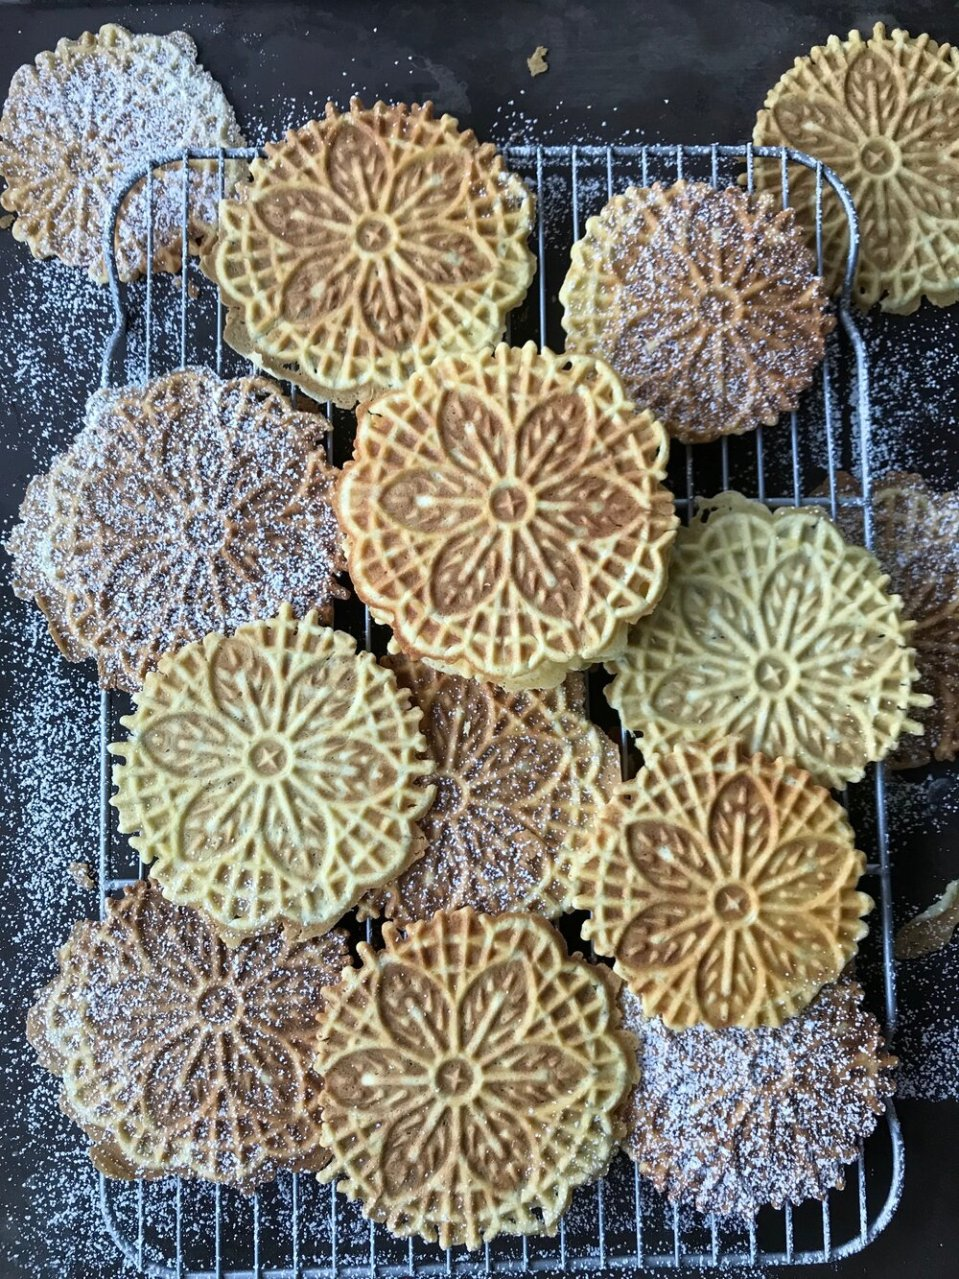 Meghan's Favorite Holiday Cookie | Didn't I Just Feed You Podcast .jpg